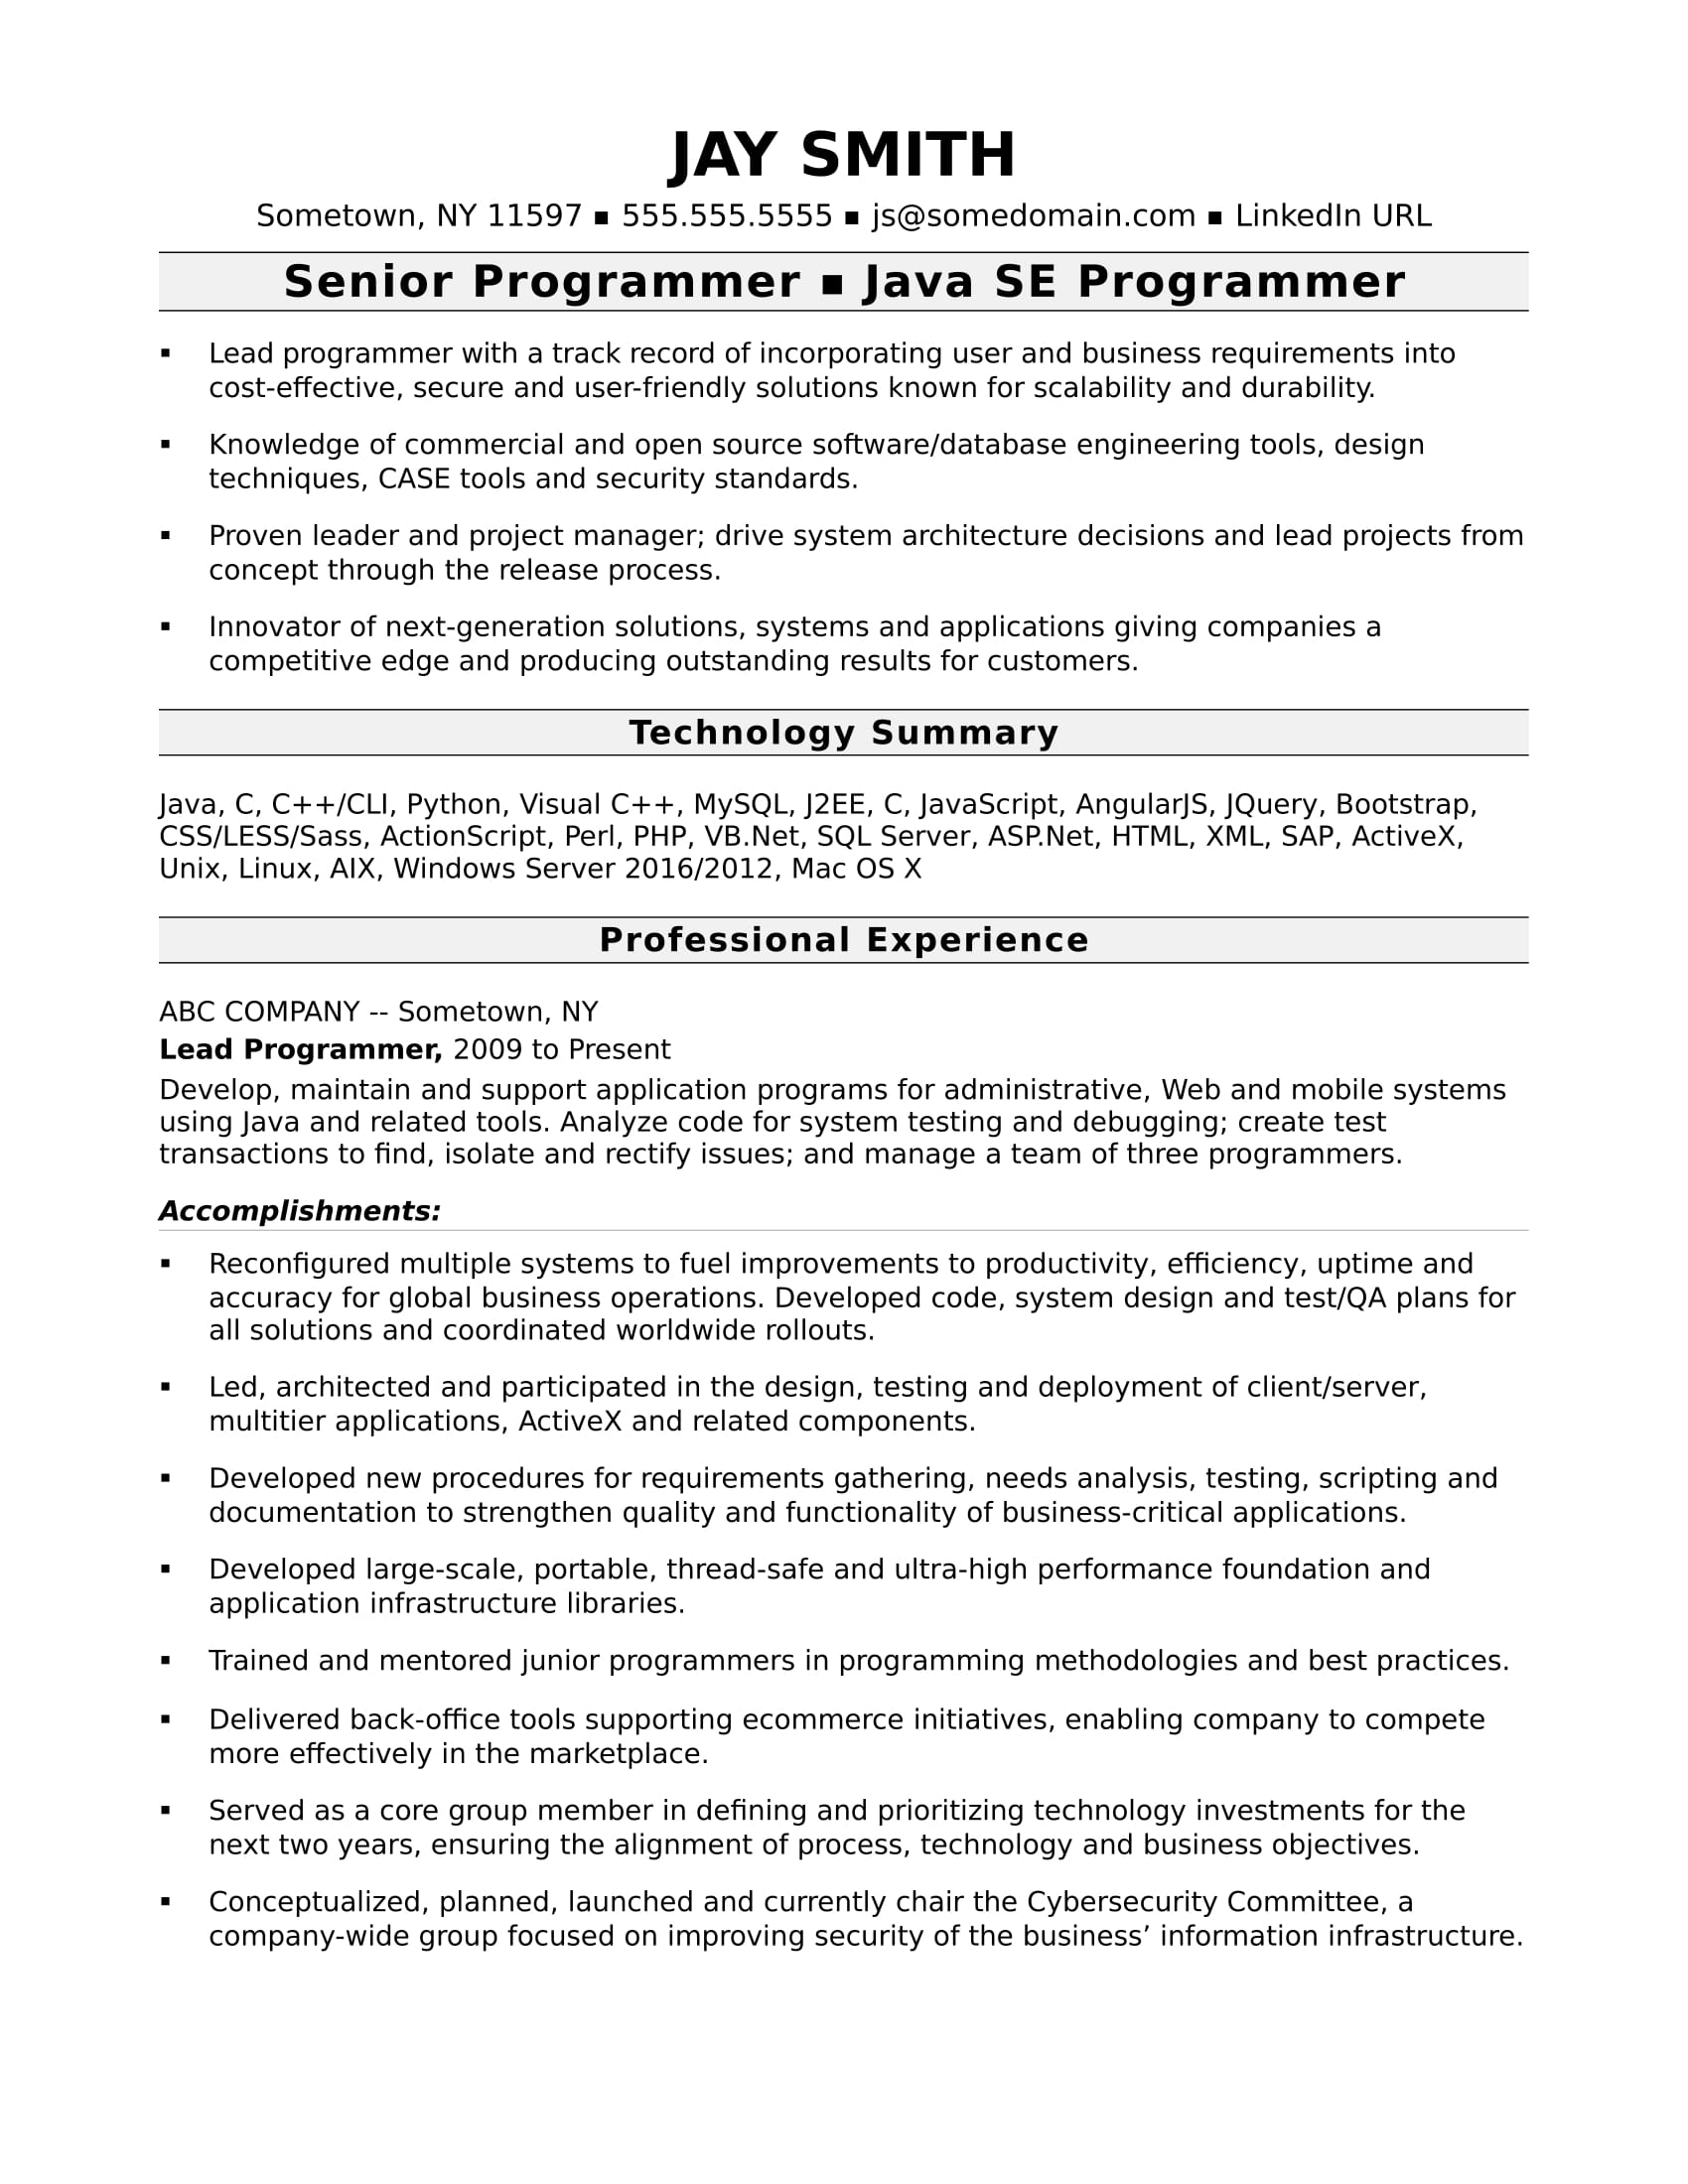 programmer resume template monster best python projects for computer experienced templets Resume Best Python Projects For Resume